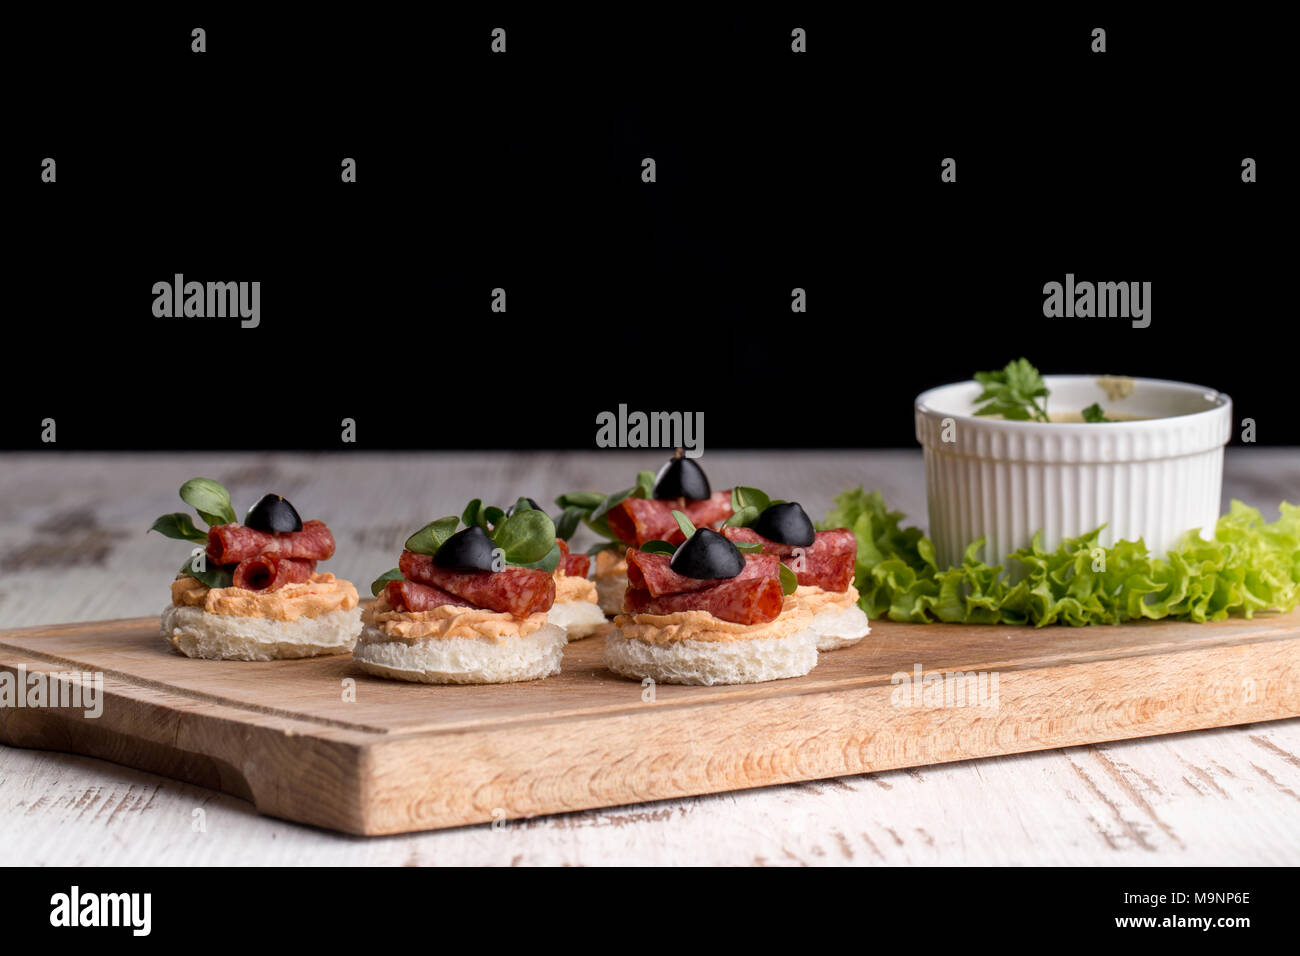 Delicious canapes with salami, olives and spices on a woody background - Stock Image